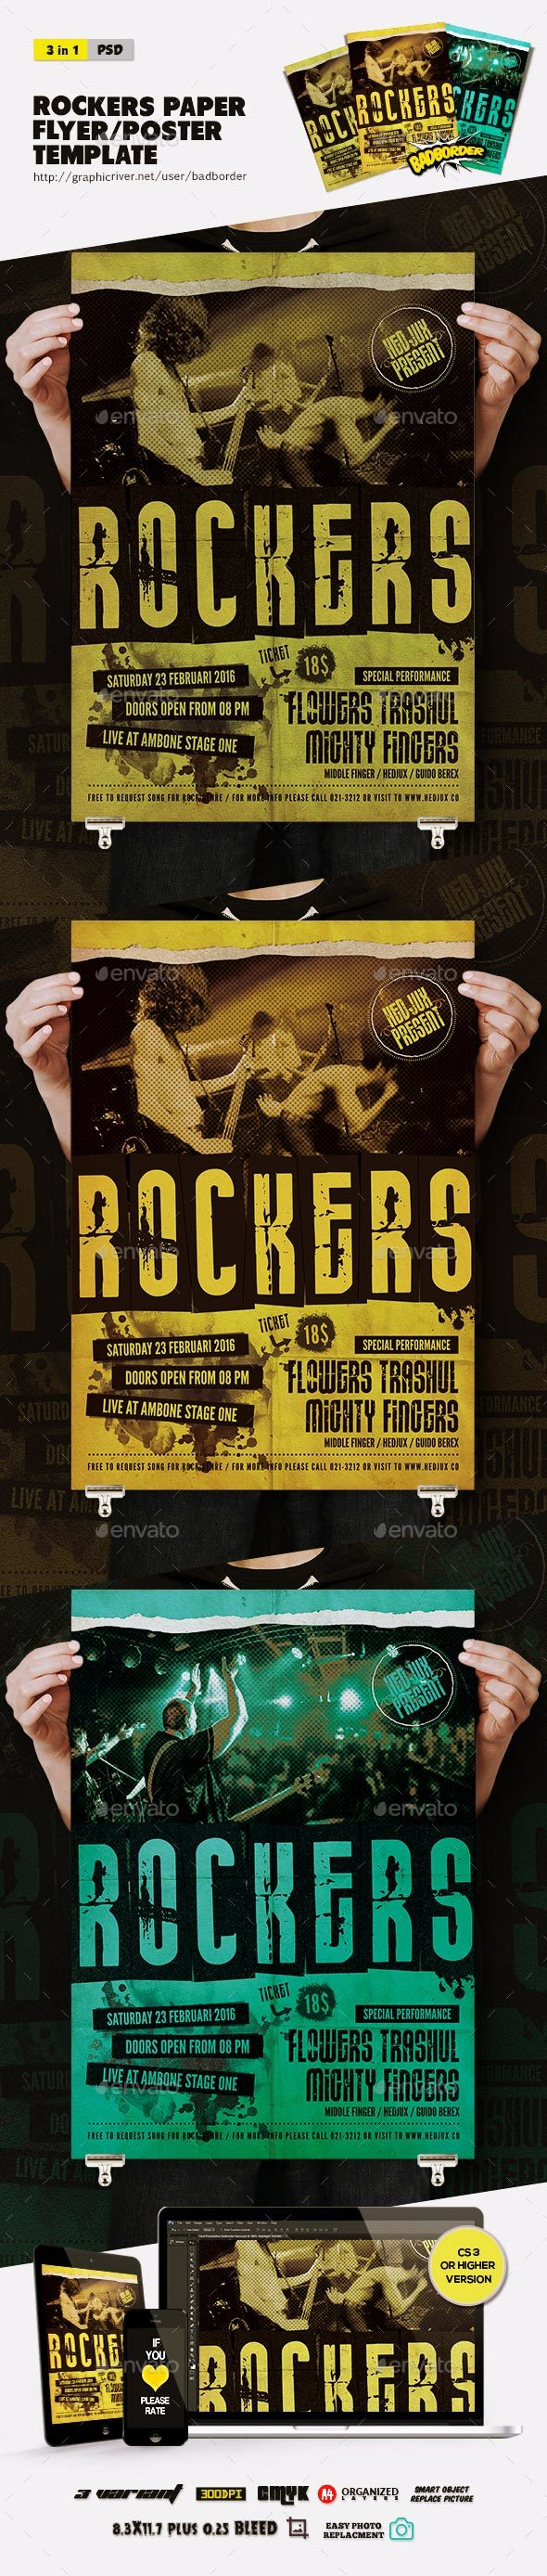 Rockers Paper Flyer/Poster - Concerts Events